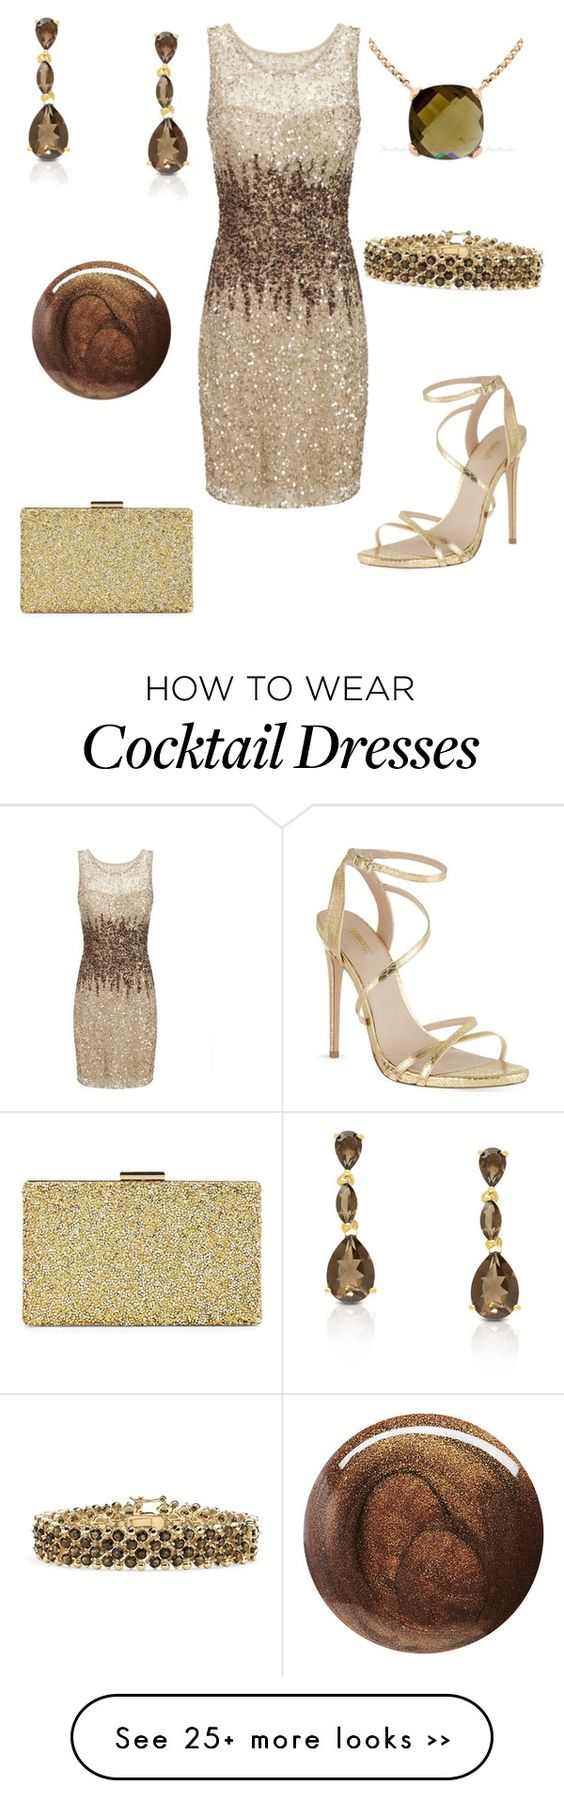 """Cocktail Hour Outfit 64 - Brandi"" by office-girl on Polyvore:"